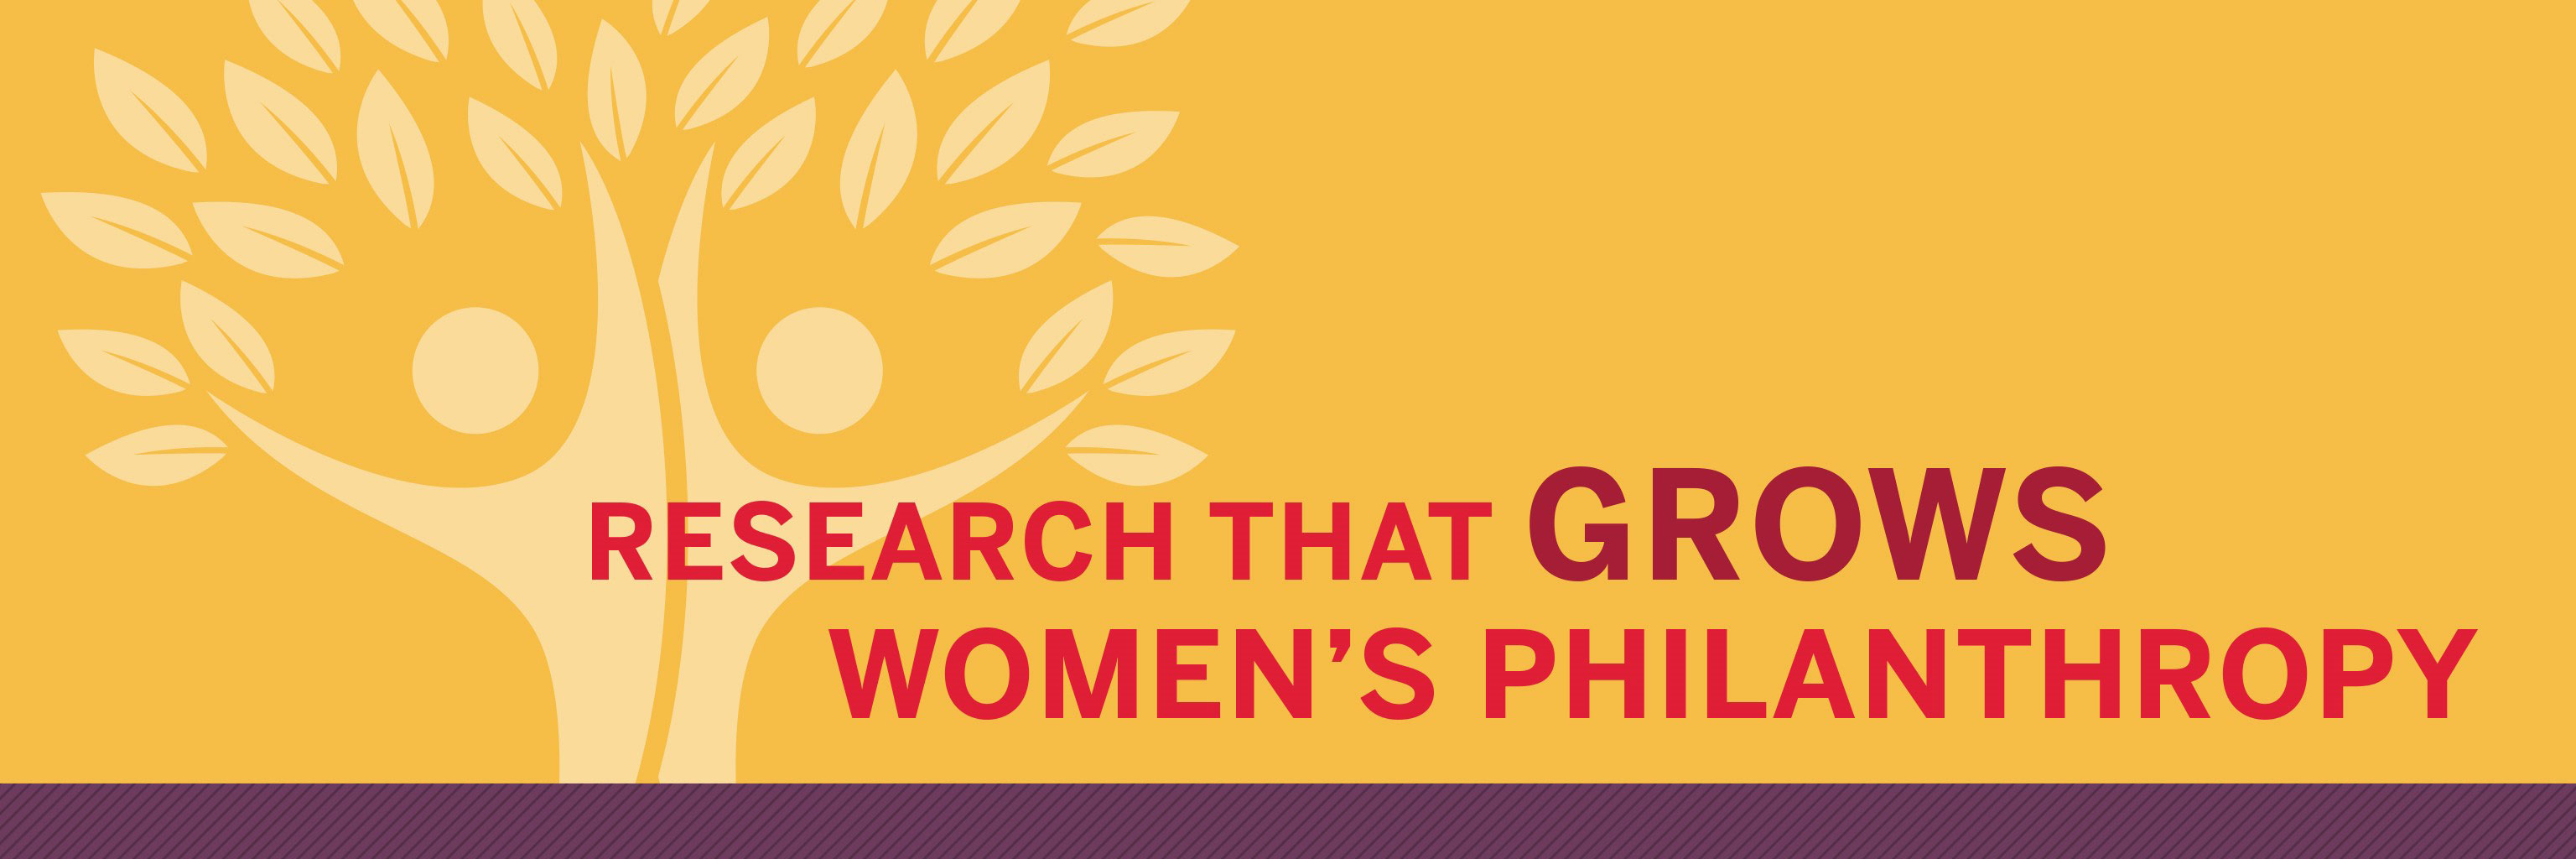 Research that grows women's philanthropy